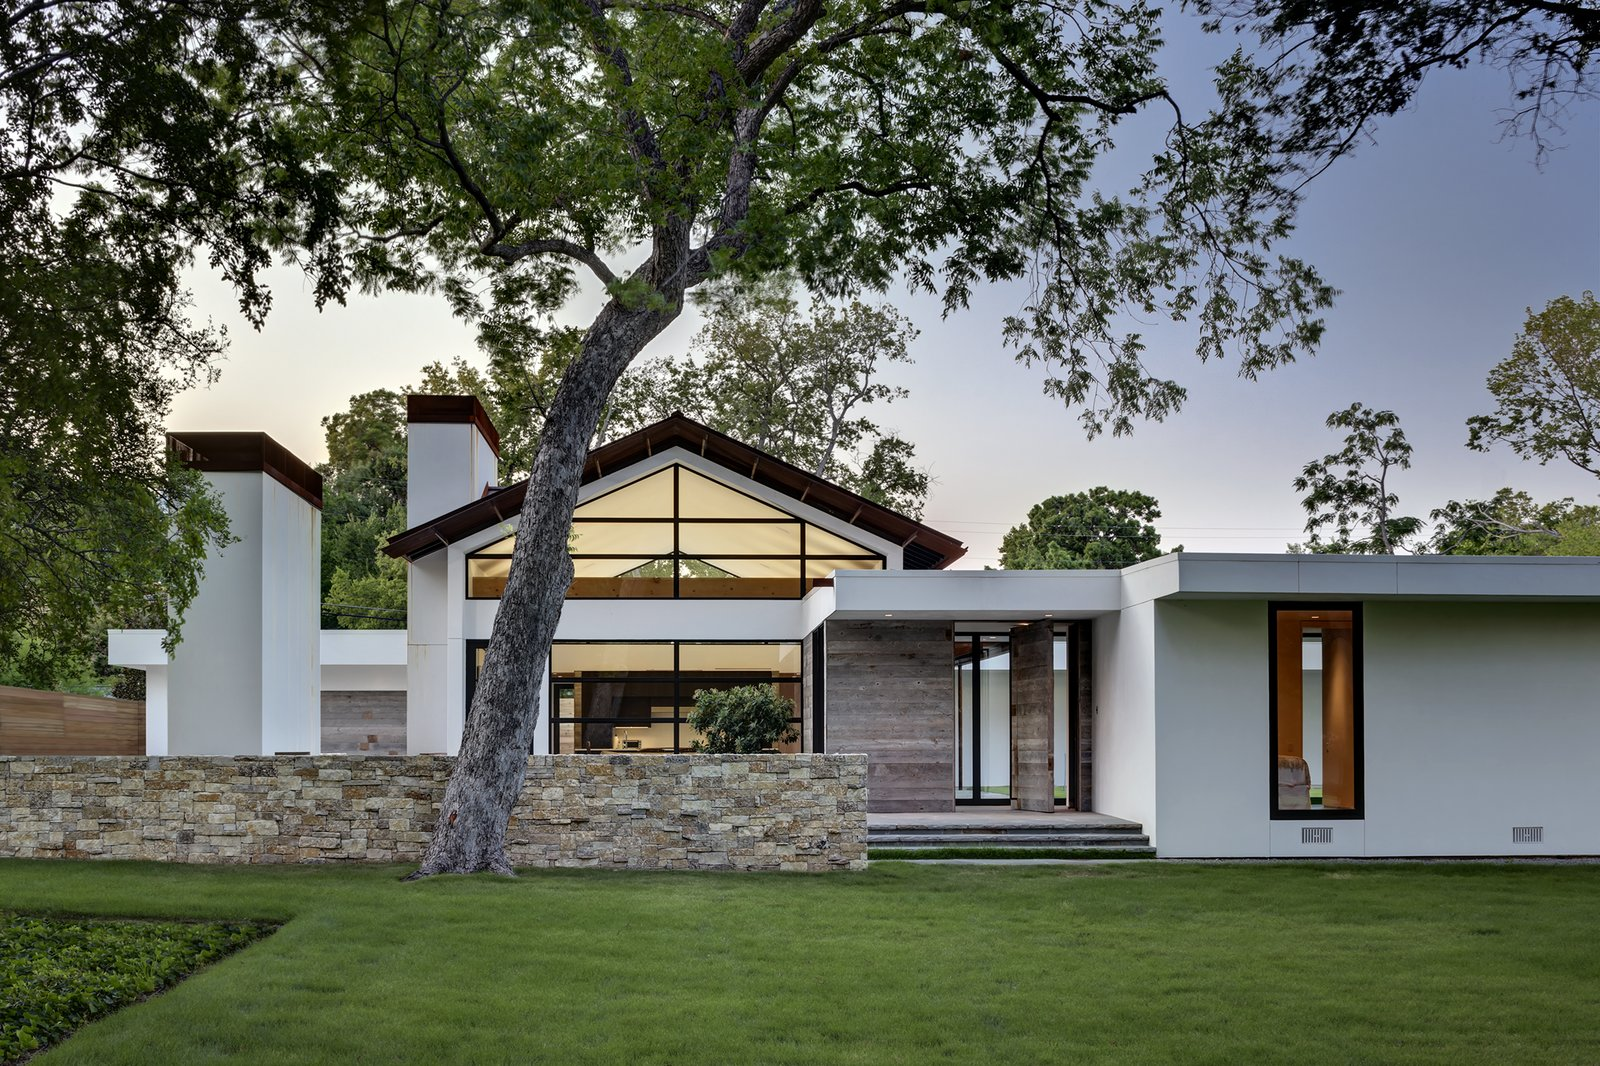 The home's outer walls were dry-stacked with limestone cut from a Texas Granbury quarry, and its gabled roof was made with weathered Cor-Ten steel that emits the same maverick spirit as a Richard Serra sculpture. The freestanding fireplace just inside the courtyard was even salvaged from the old house's living room. Clean stucco walls contrast with the grass and trees, while reclaimed wood siding complement them.  Preston Hollow by Laura C. Mallonee